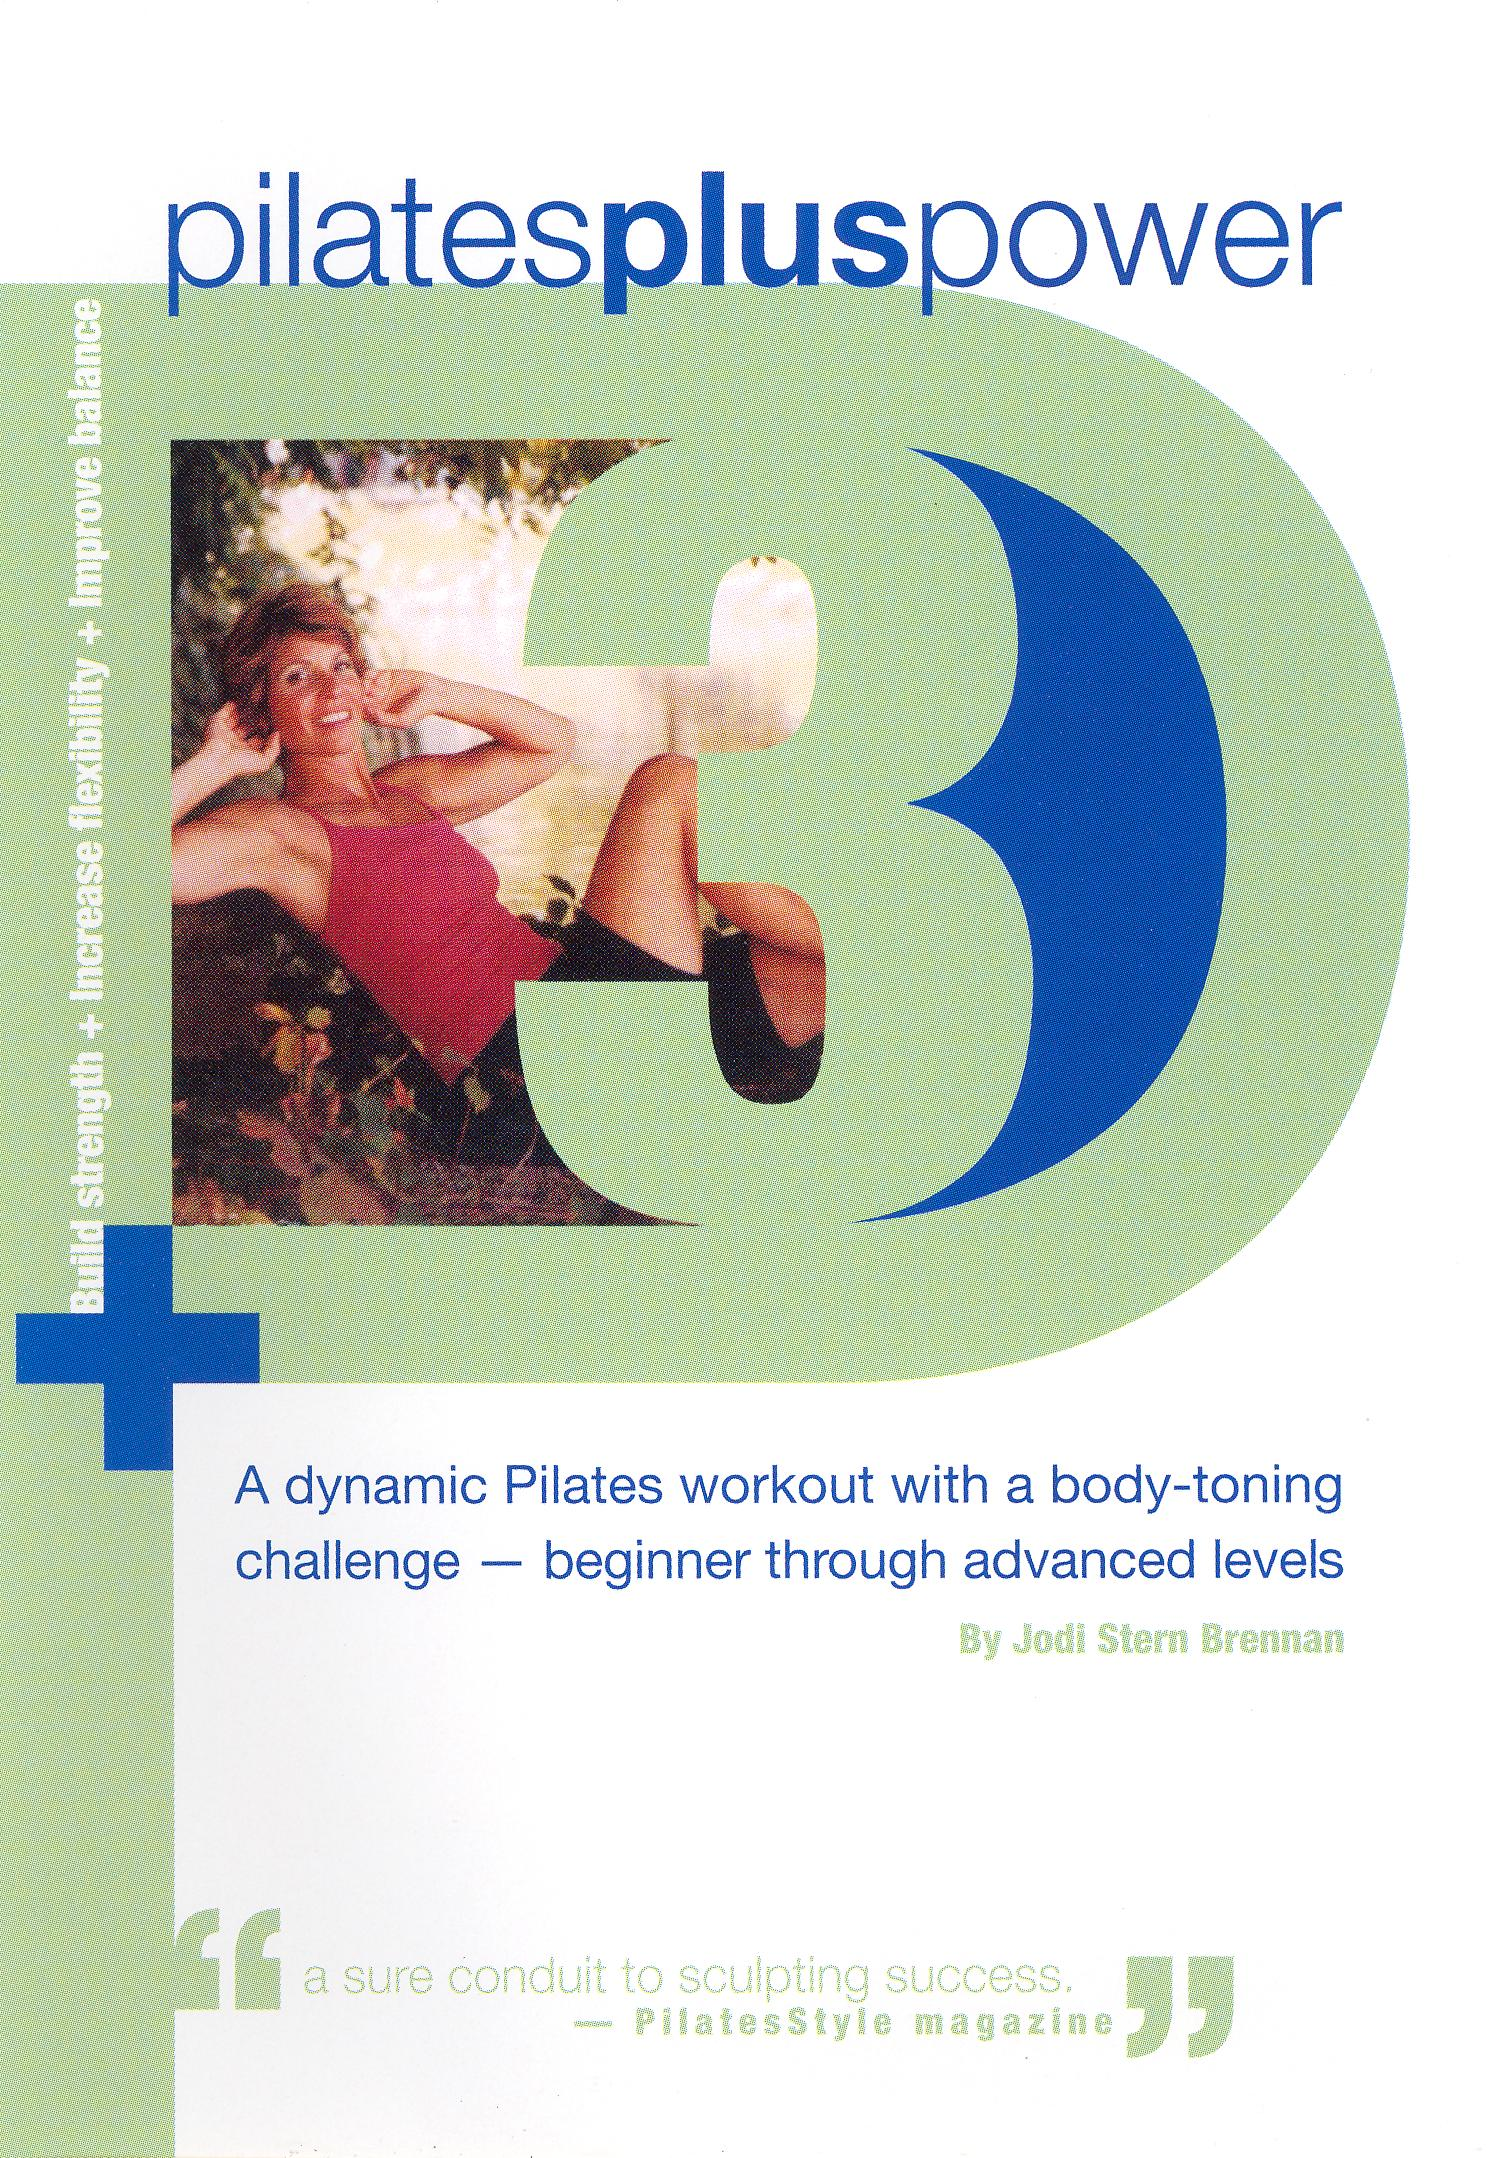 Jodi Stern Brennan: Pilates Plus Power: P3